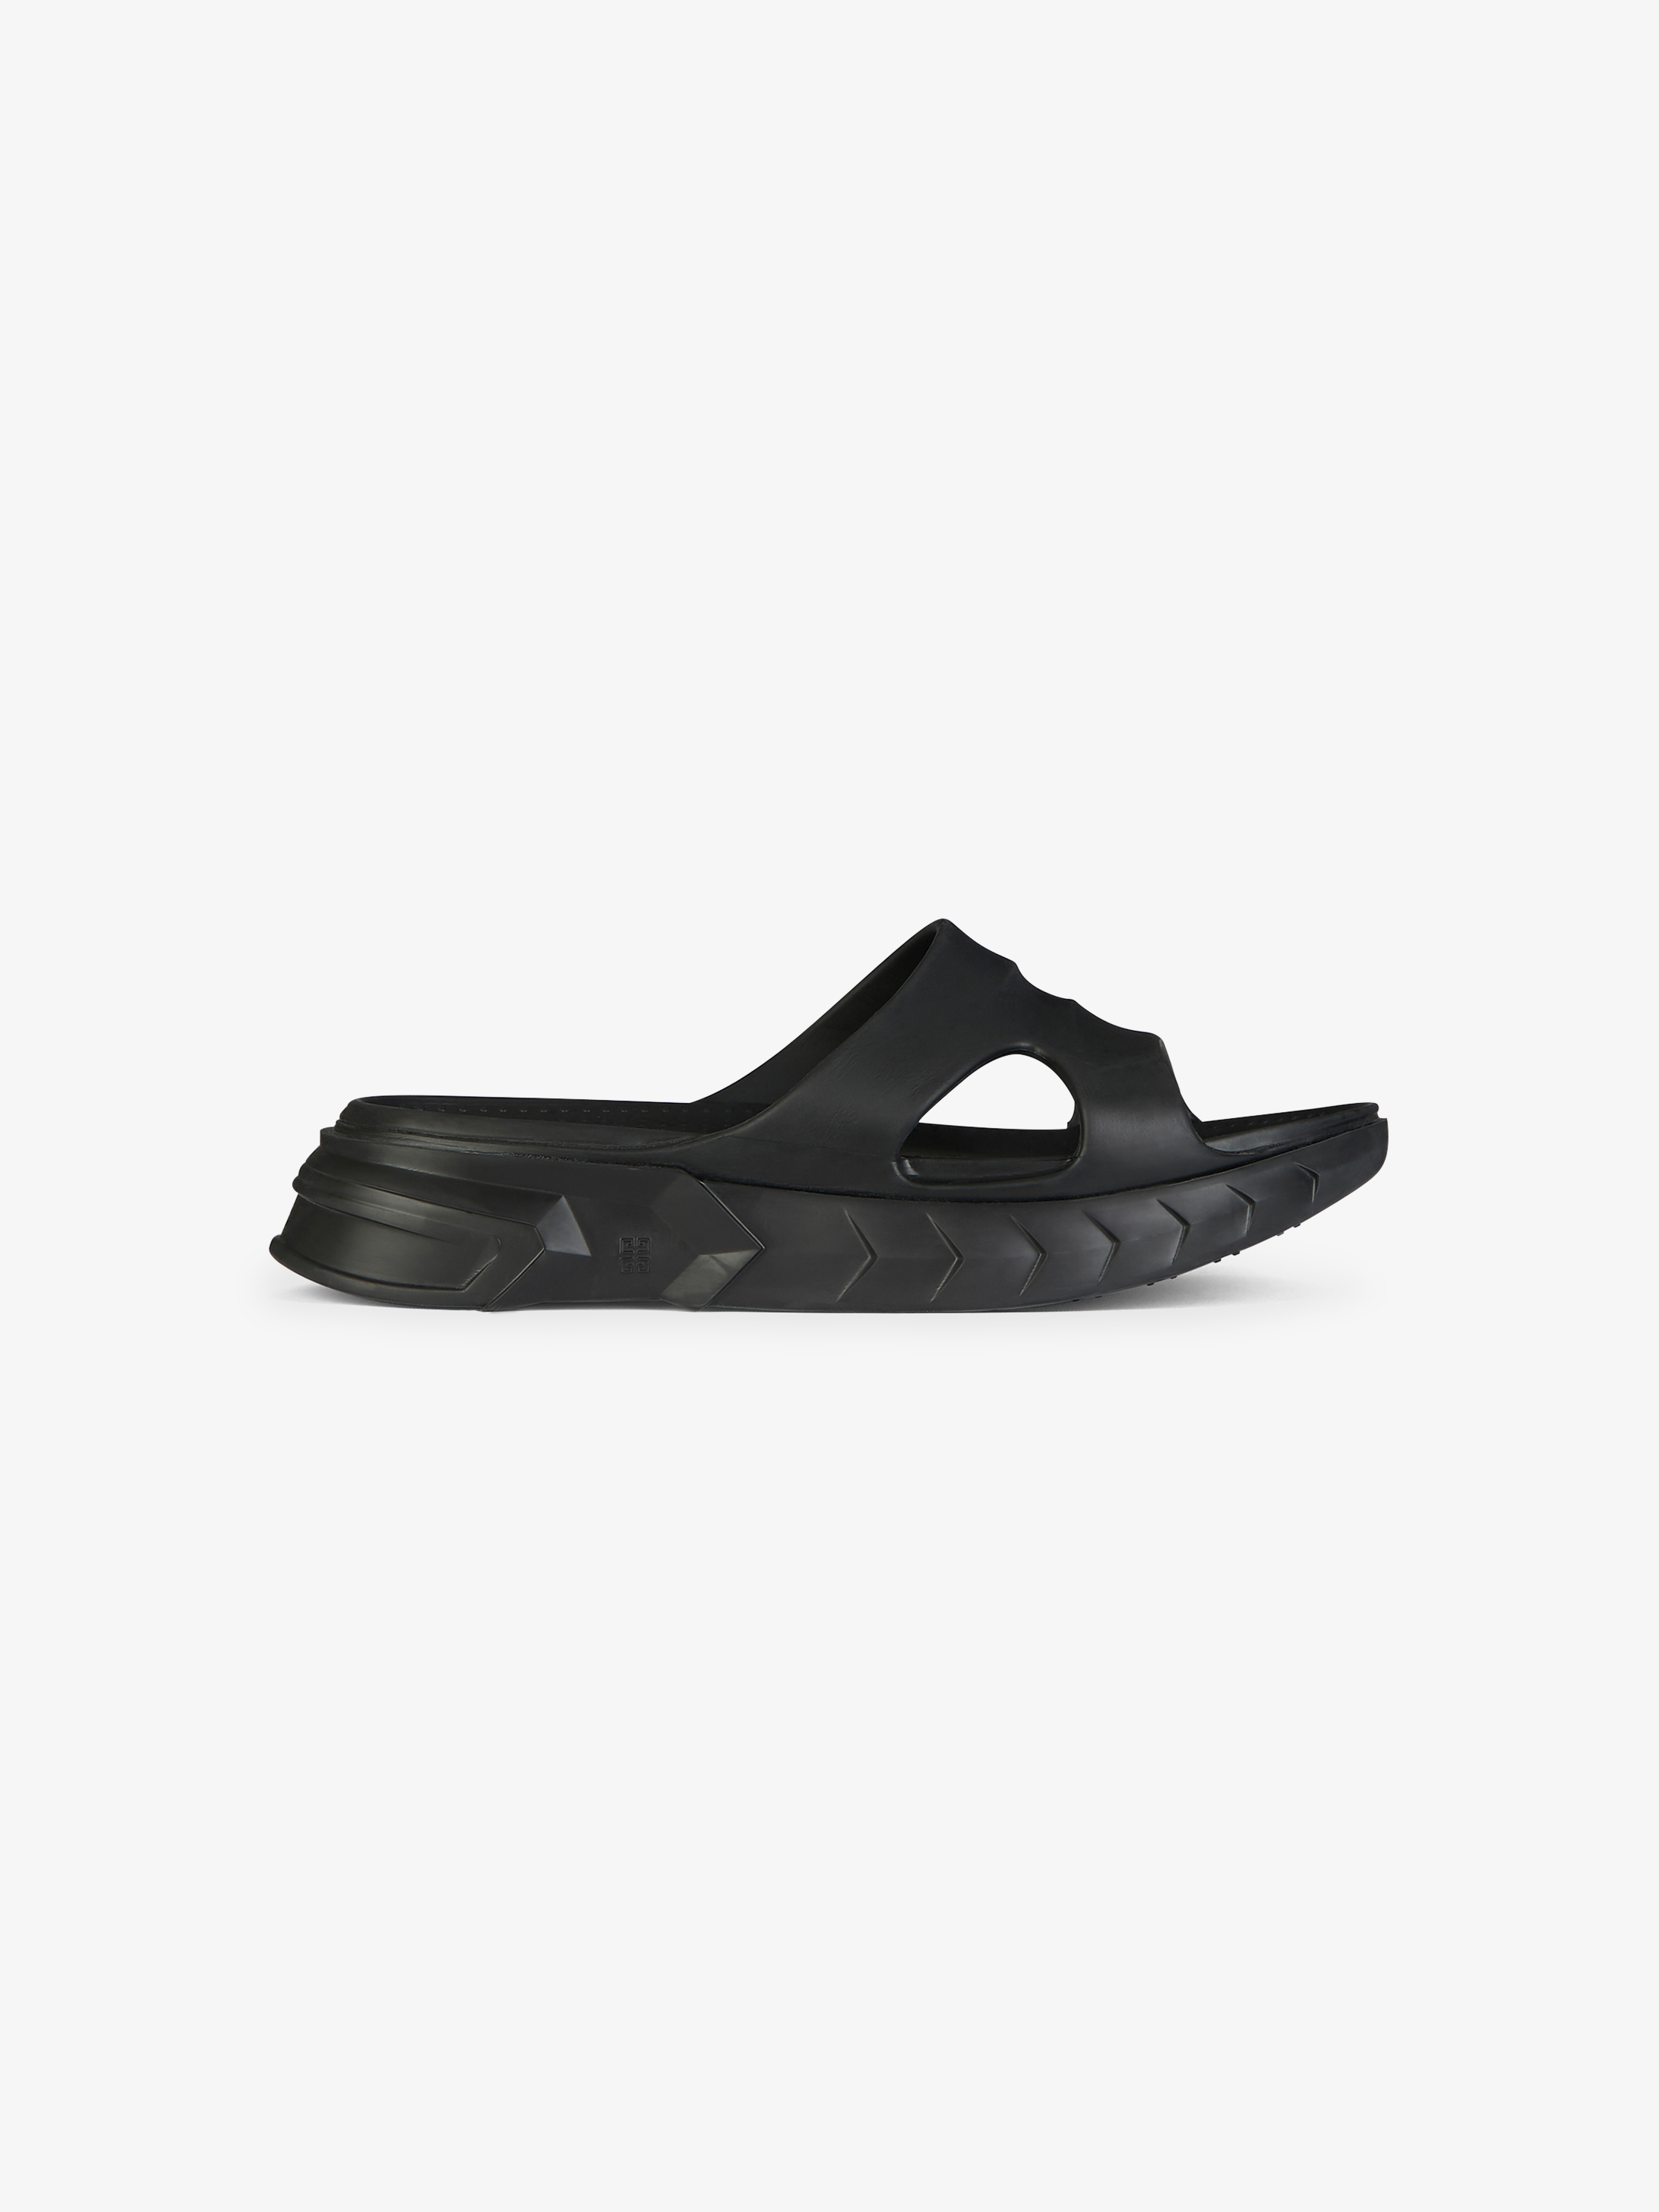 Marshmallow sandals in rubber